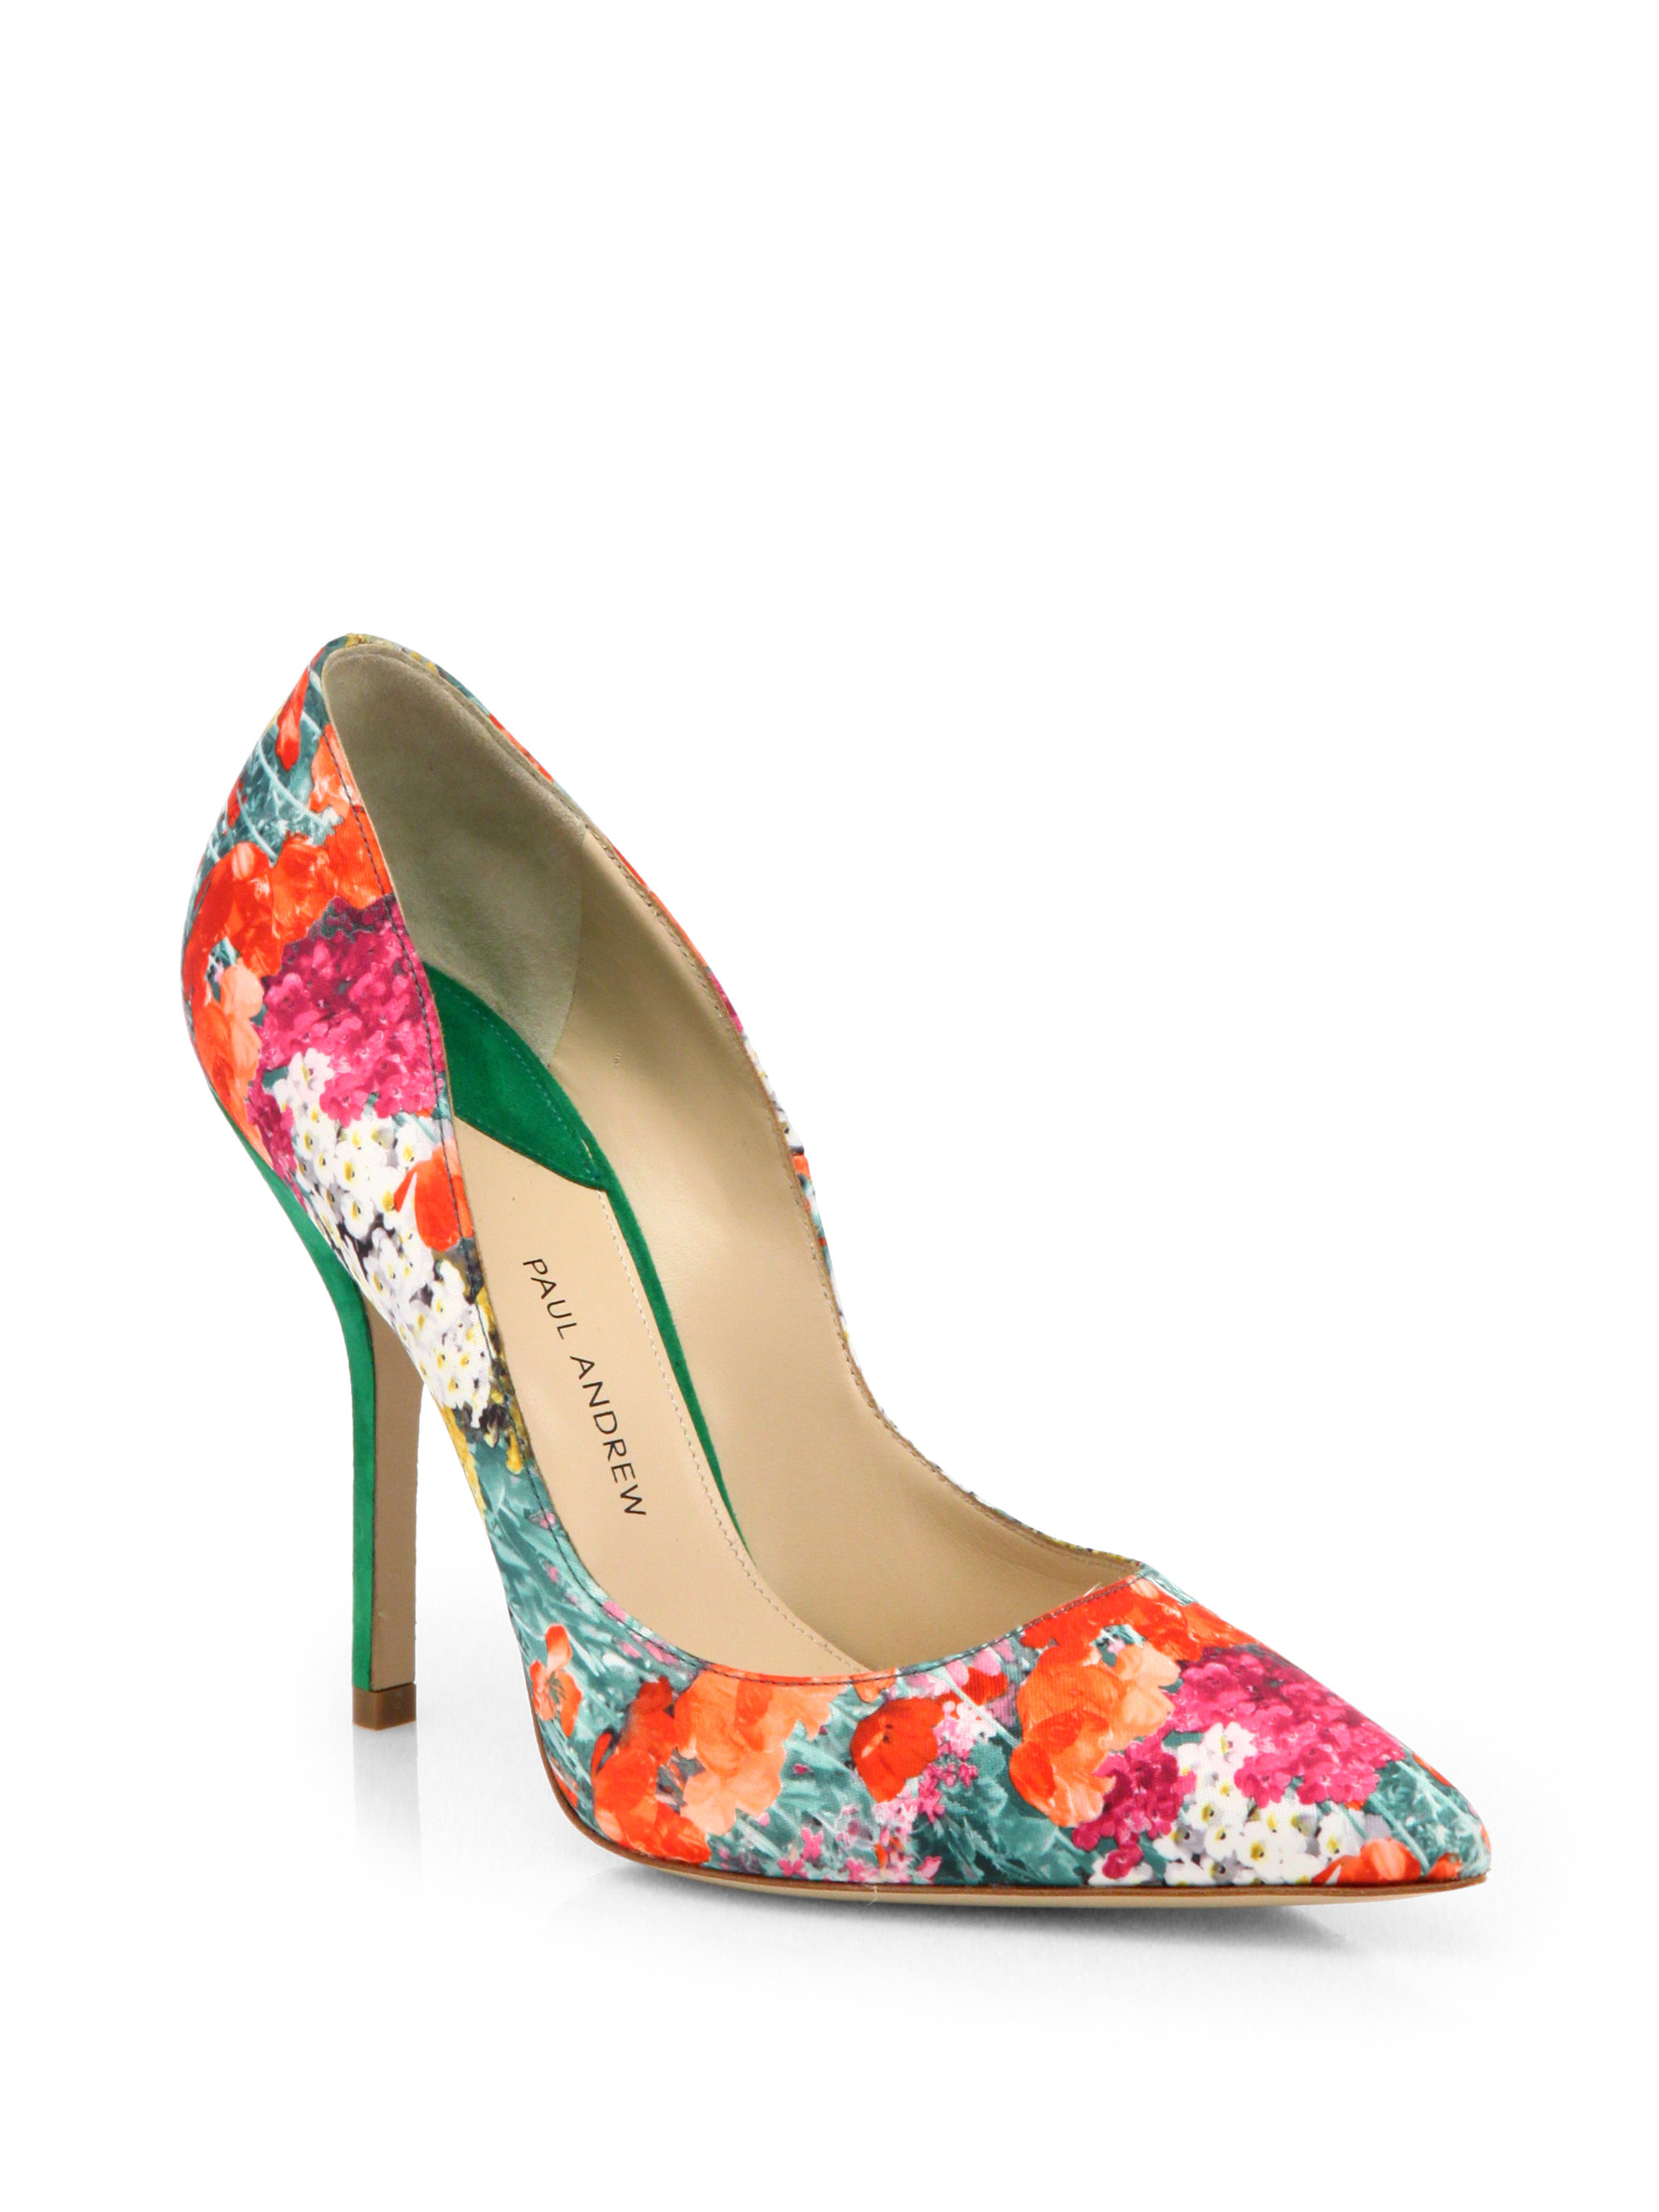 cheap discount under 50 dollars Paul Andrew Satin Printed Pumps buy cheap top quality 7CoeR